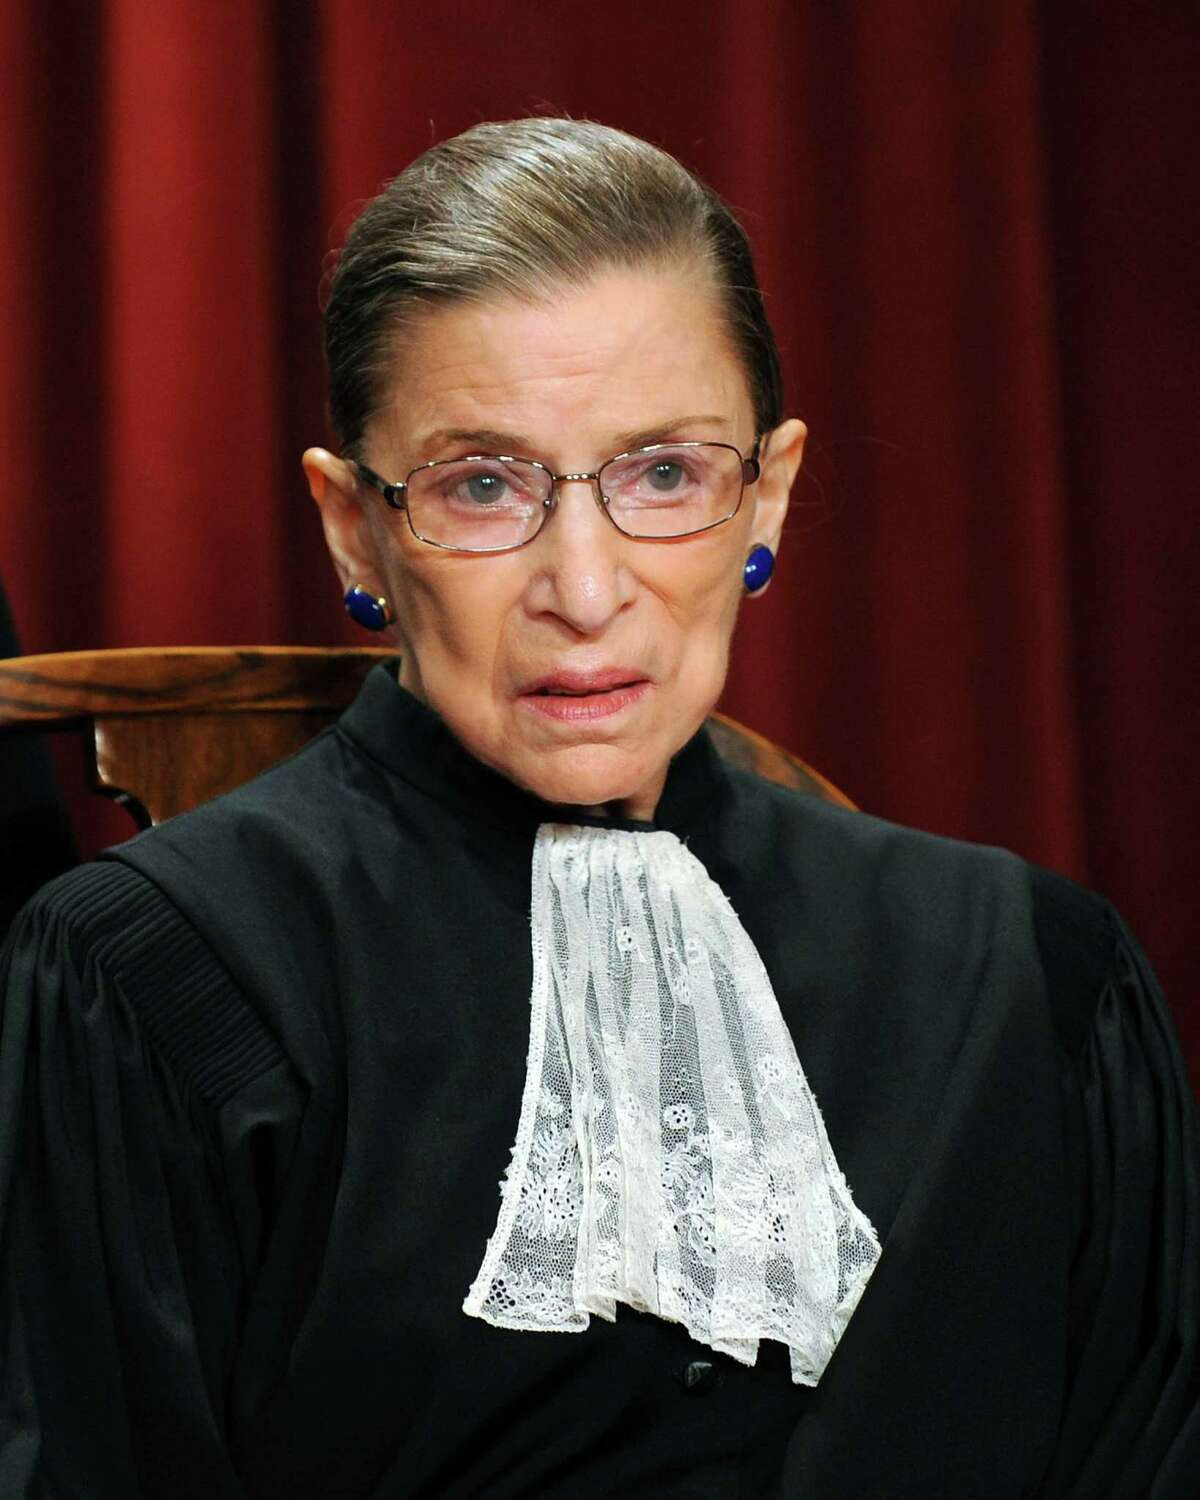 Despite graduating No. 1 in her law school class, Ruth Bader Ginsburg couldn't get a job - because she was a mother.